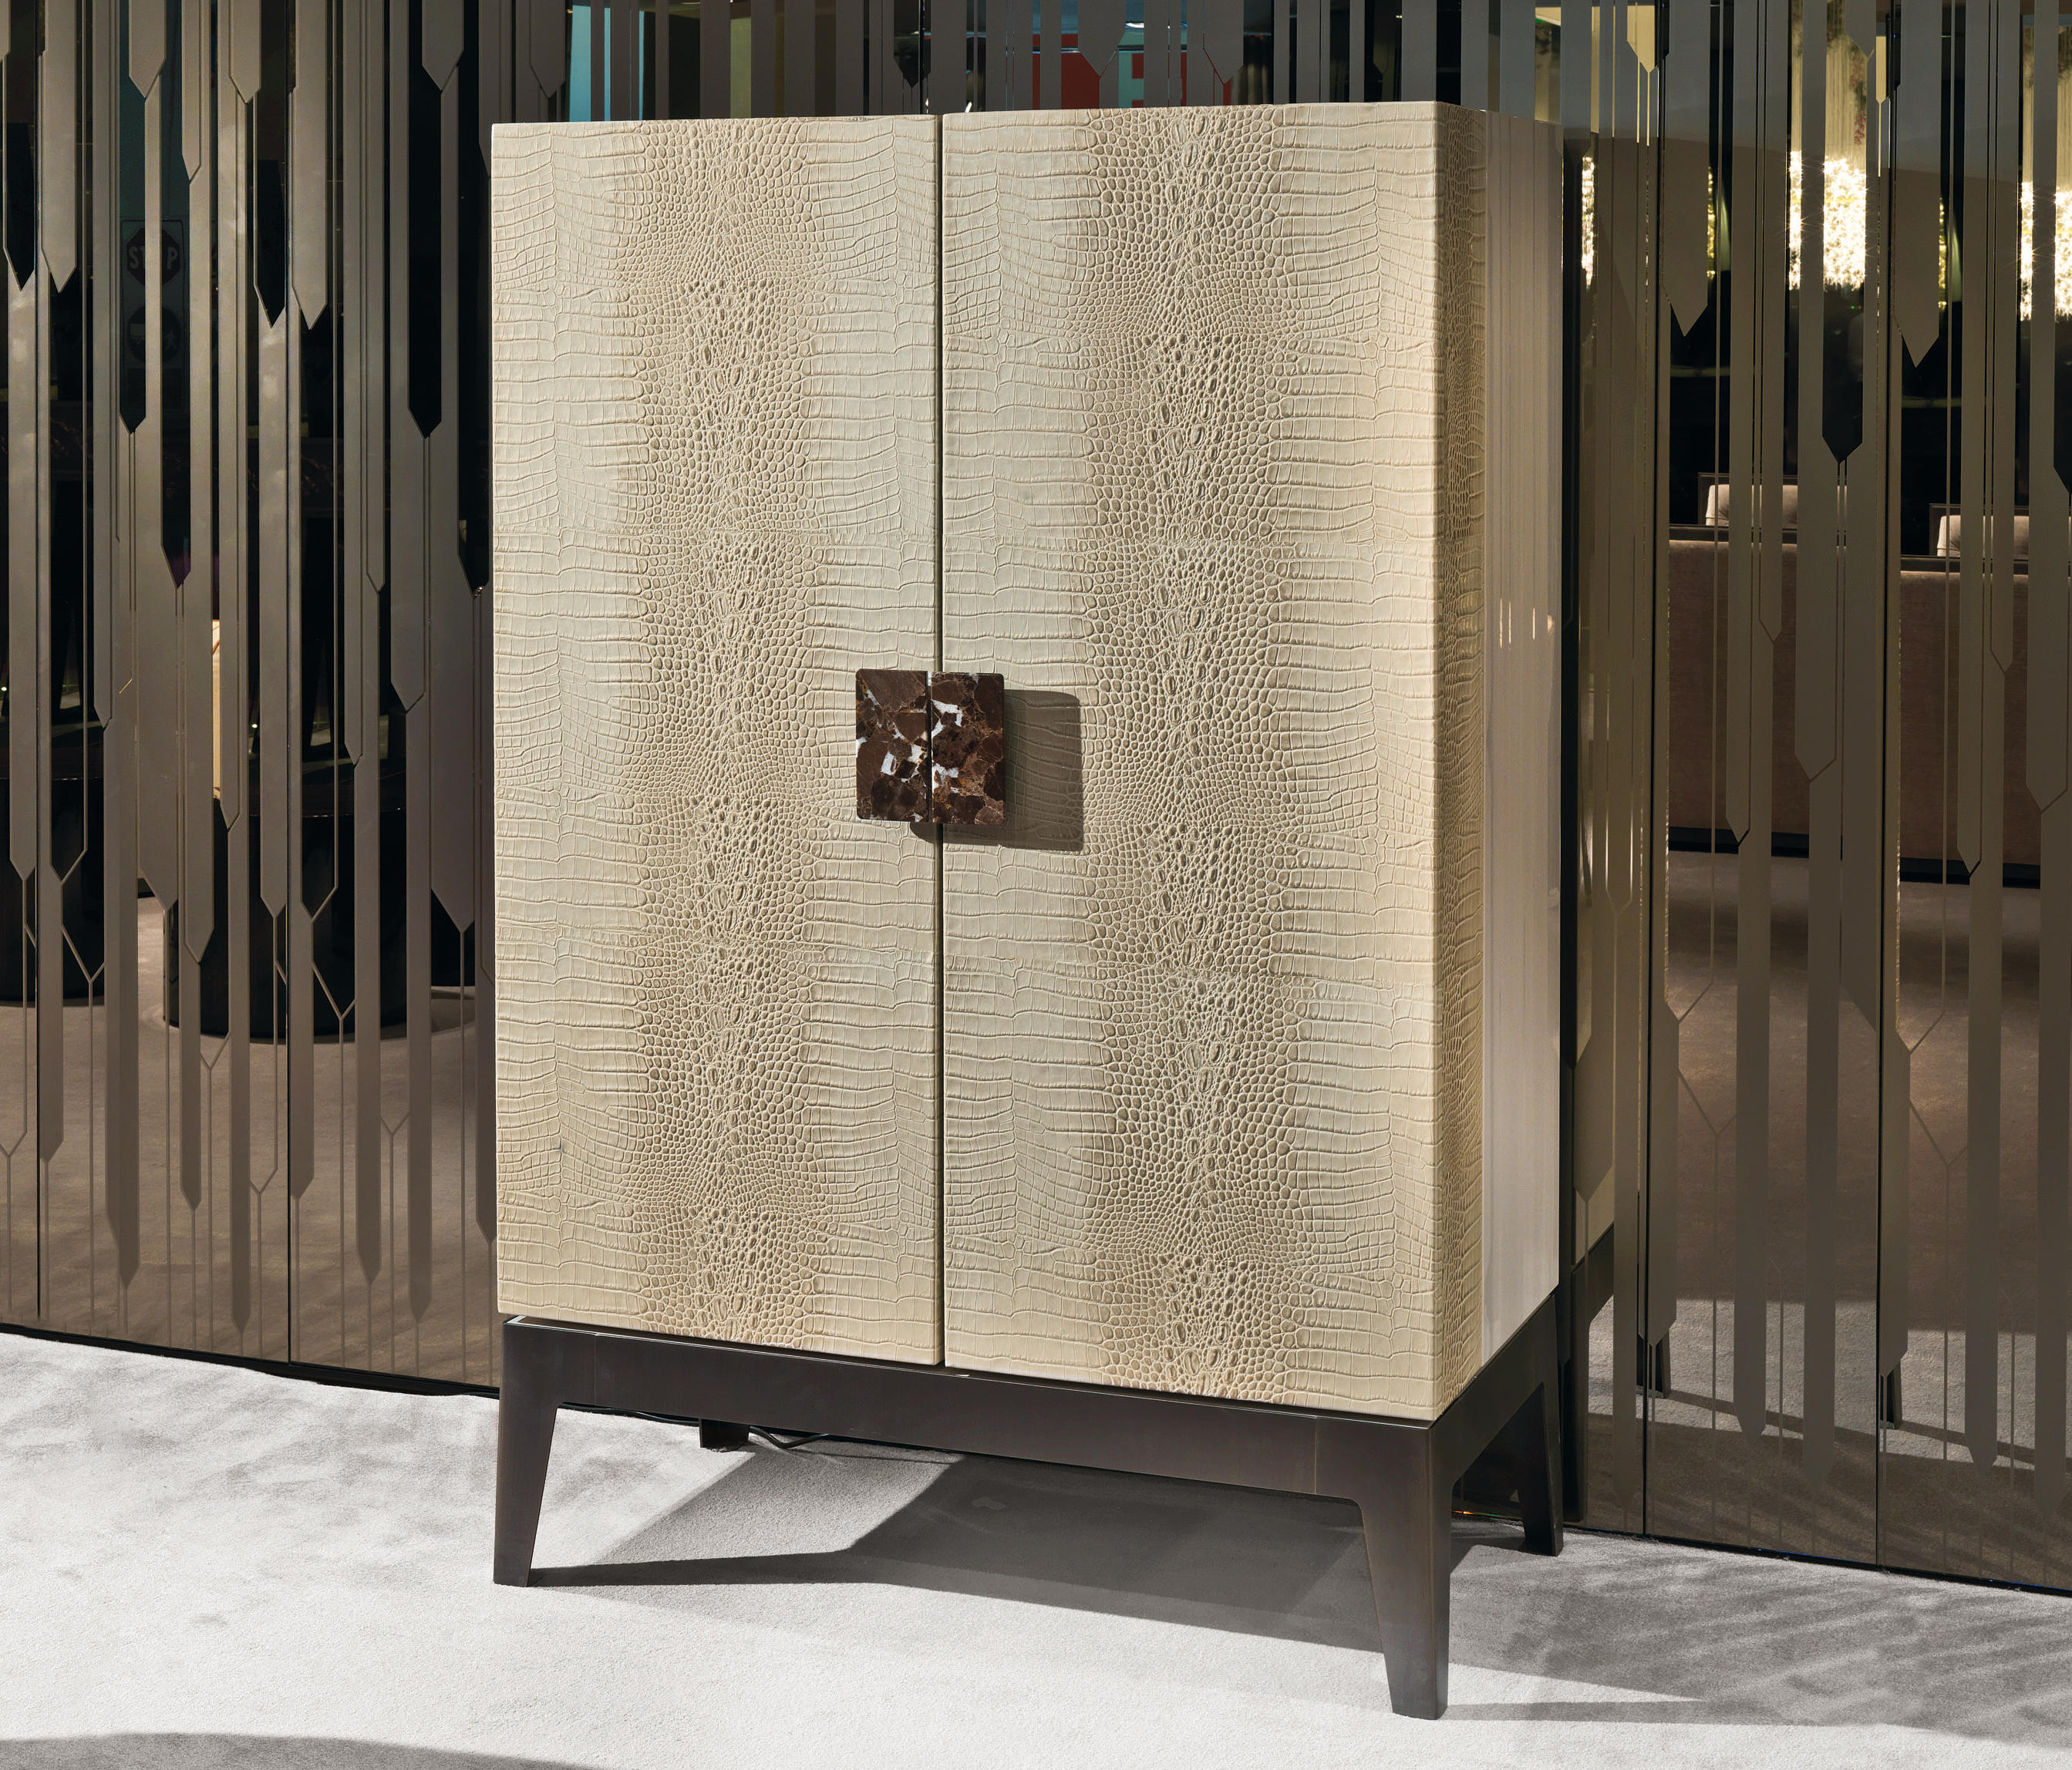 Grandeur drinks cabinets from longhi architonic for Longhi arredamenti